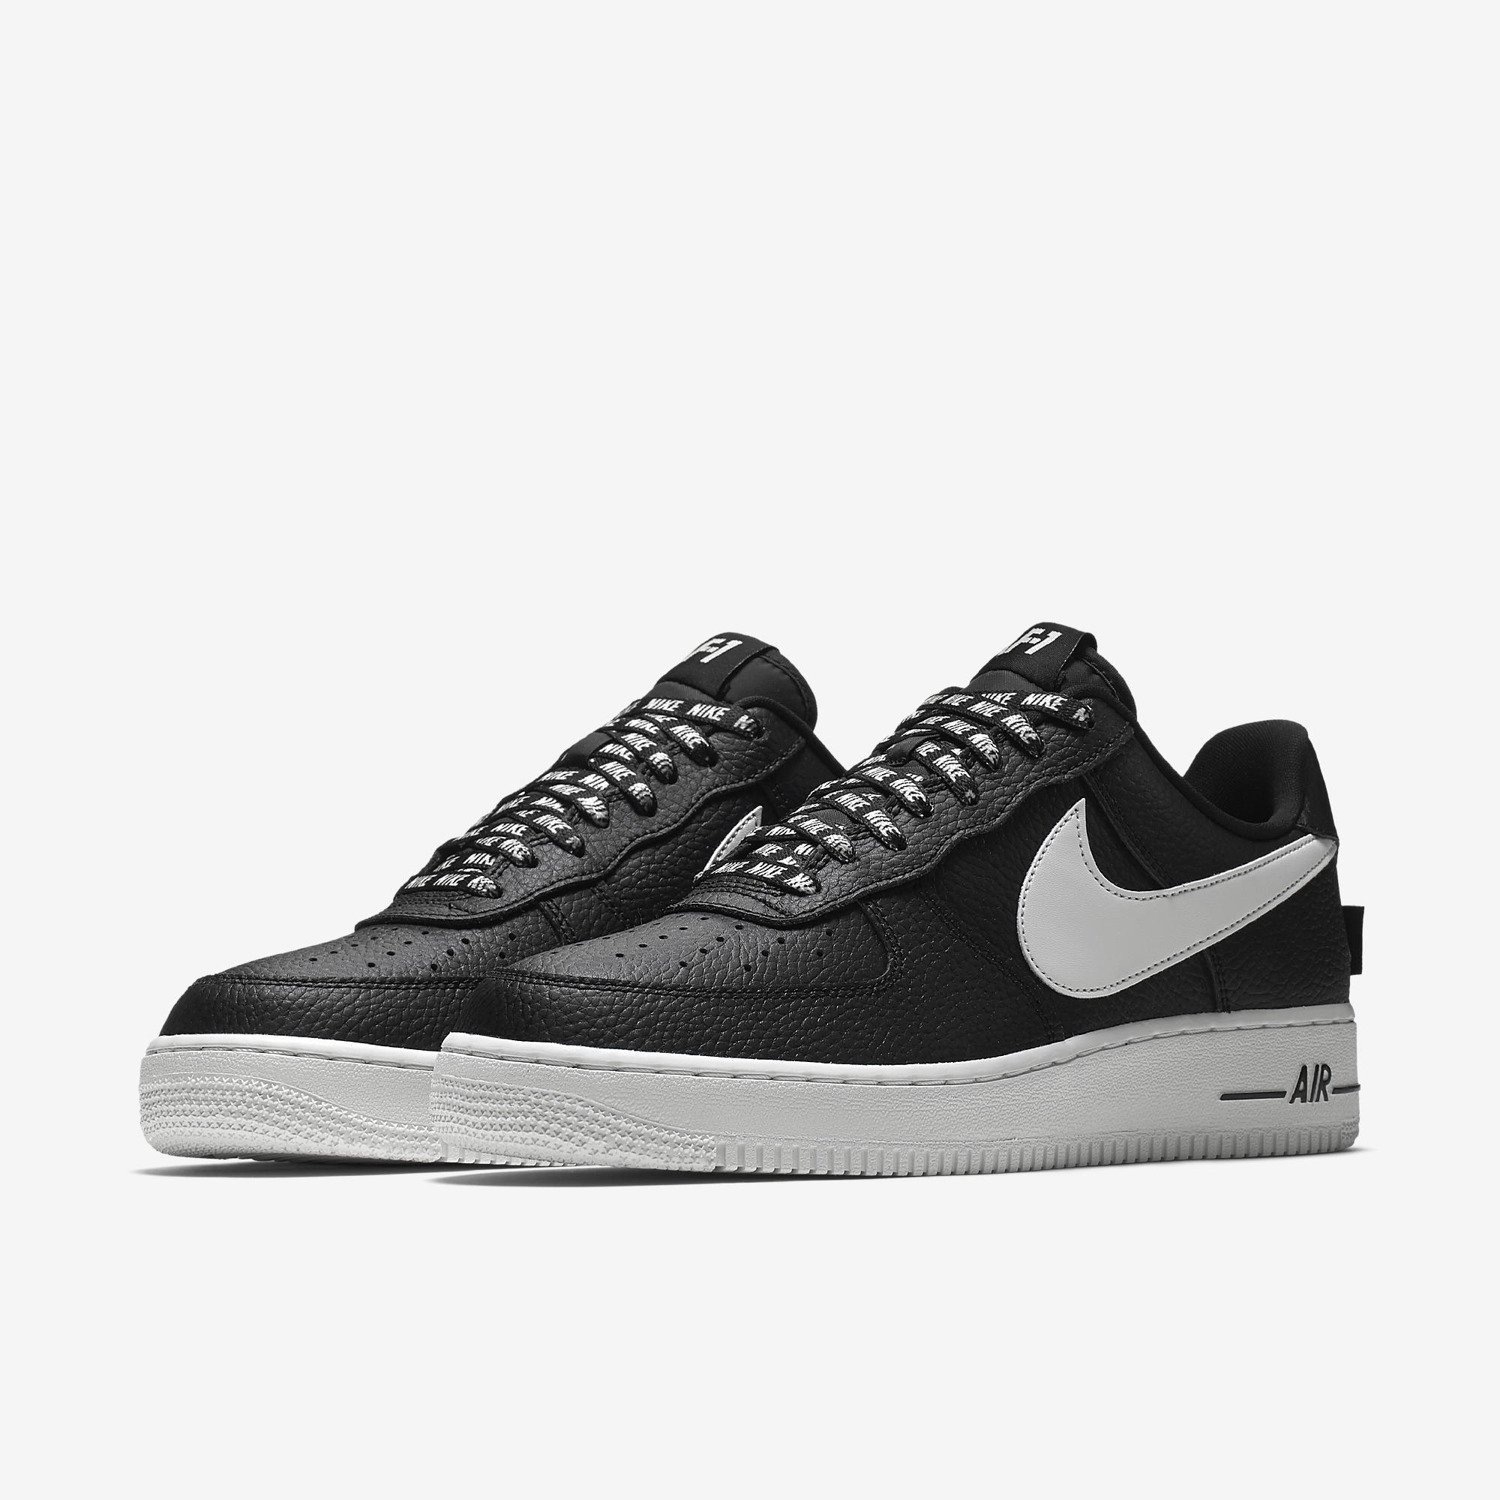 a689c1b1ad5 nike air force 1 low statement game black white 823511 007